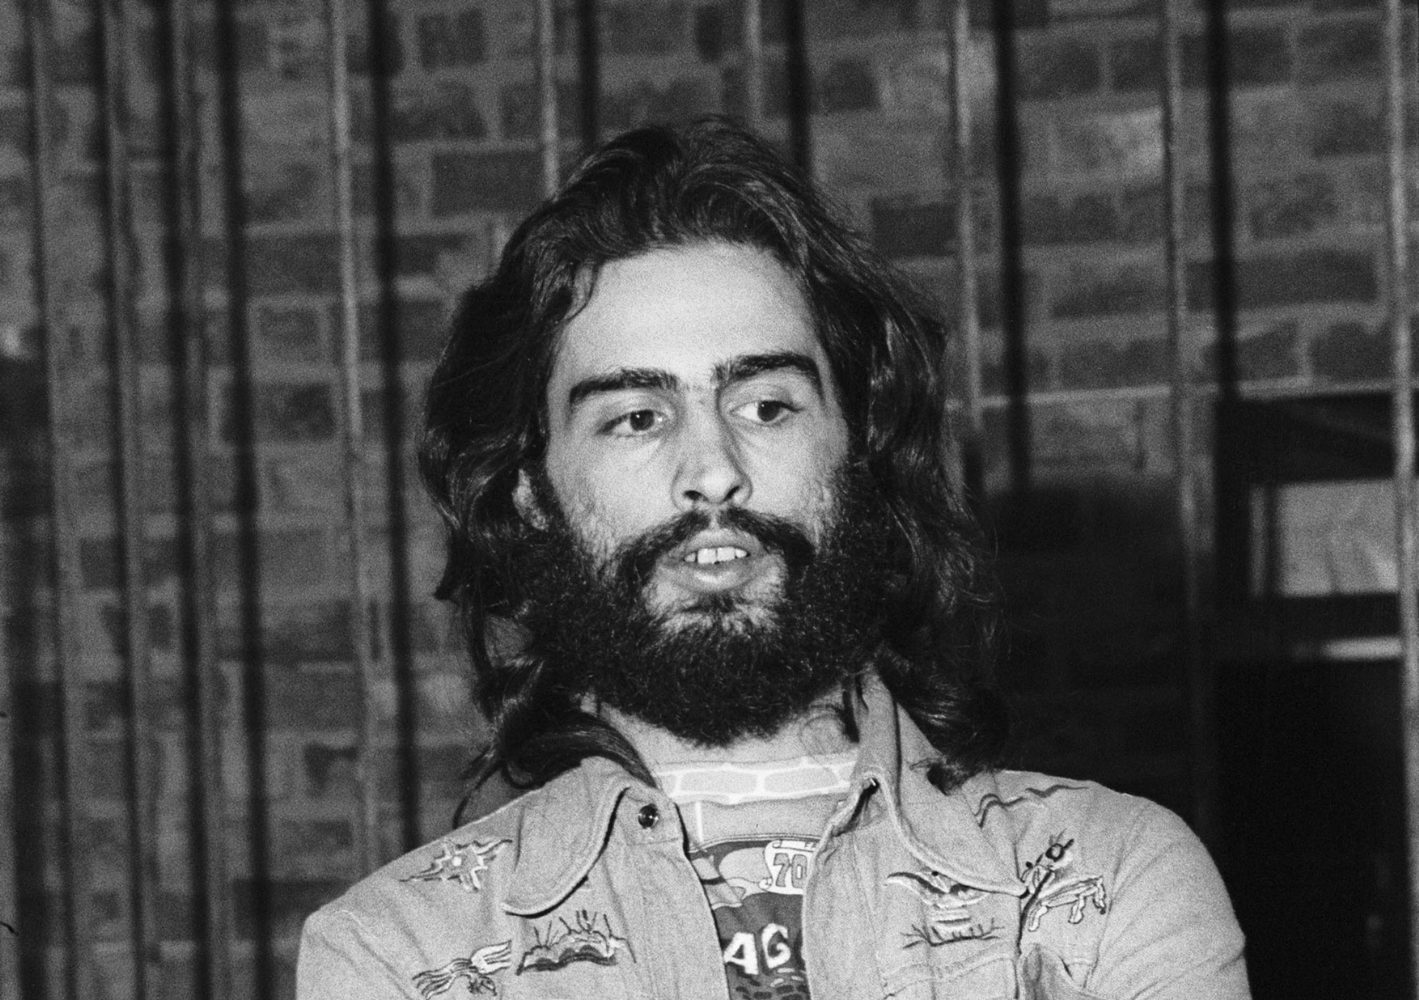 Remembering David Mancuso, New York Disco Pioneer and Founder of the Loft